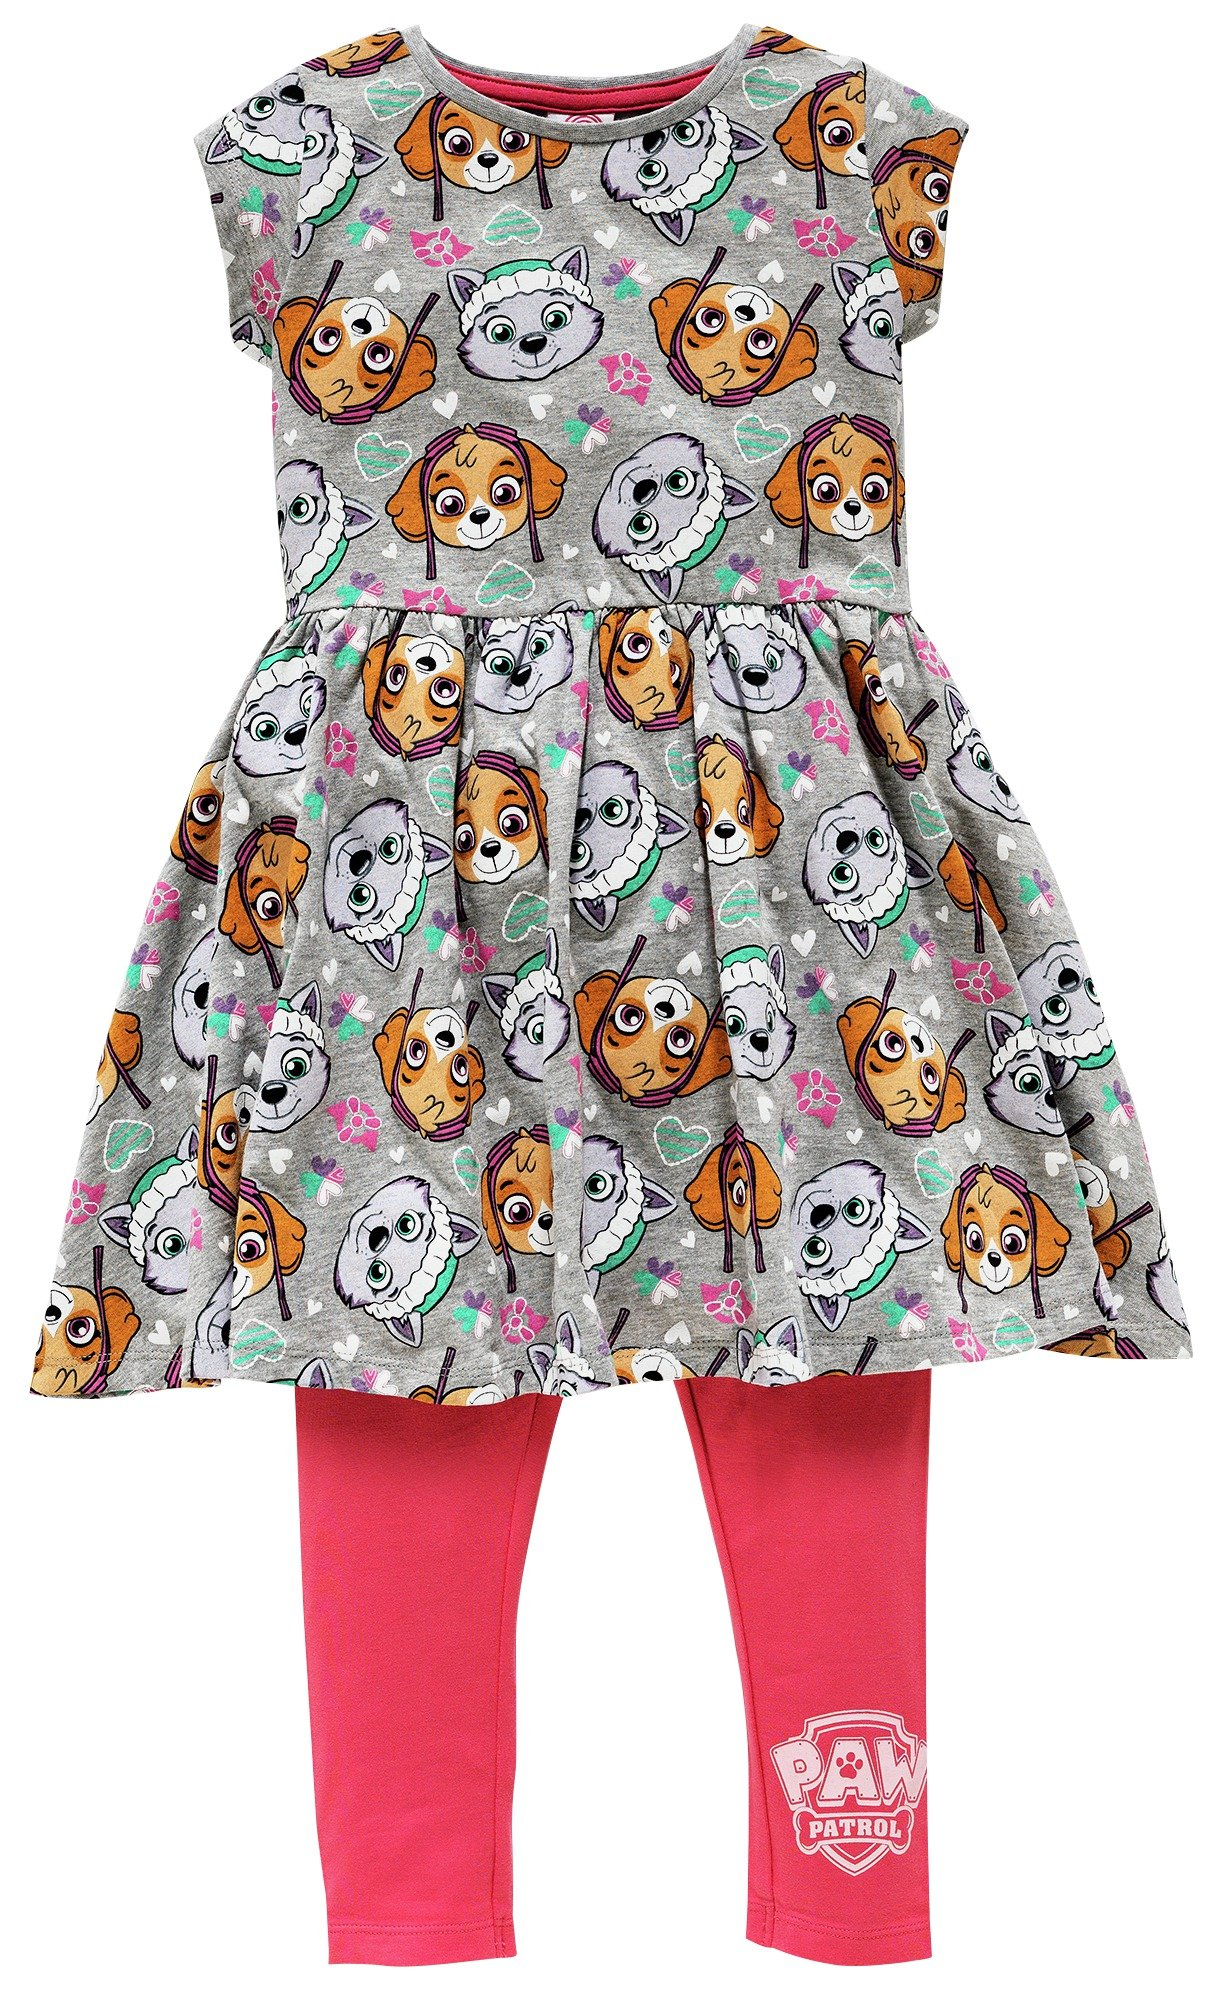 PAW Patrol Dress and Leggings Set - 3-4 Years.